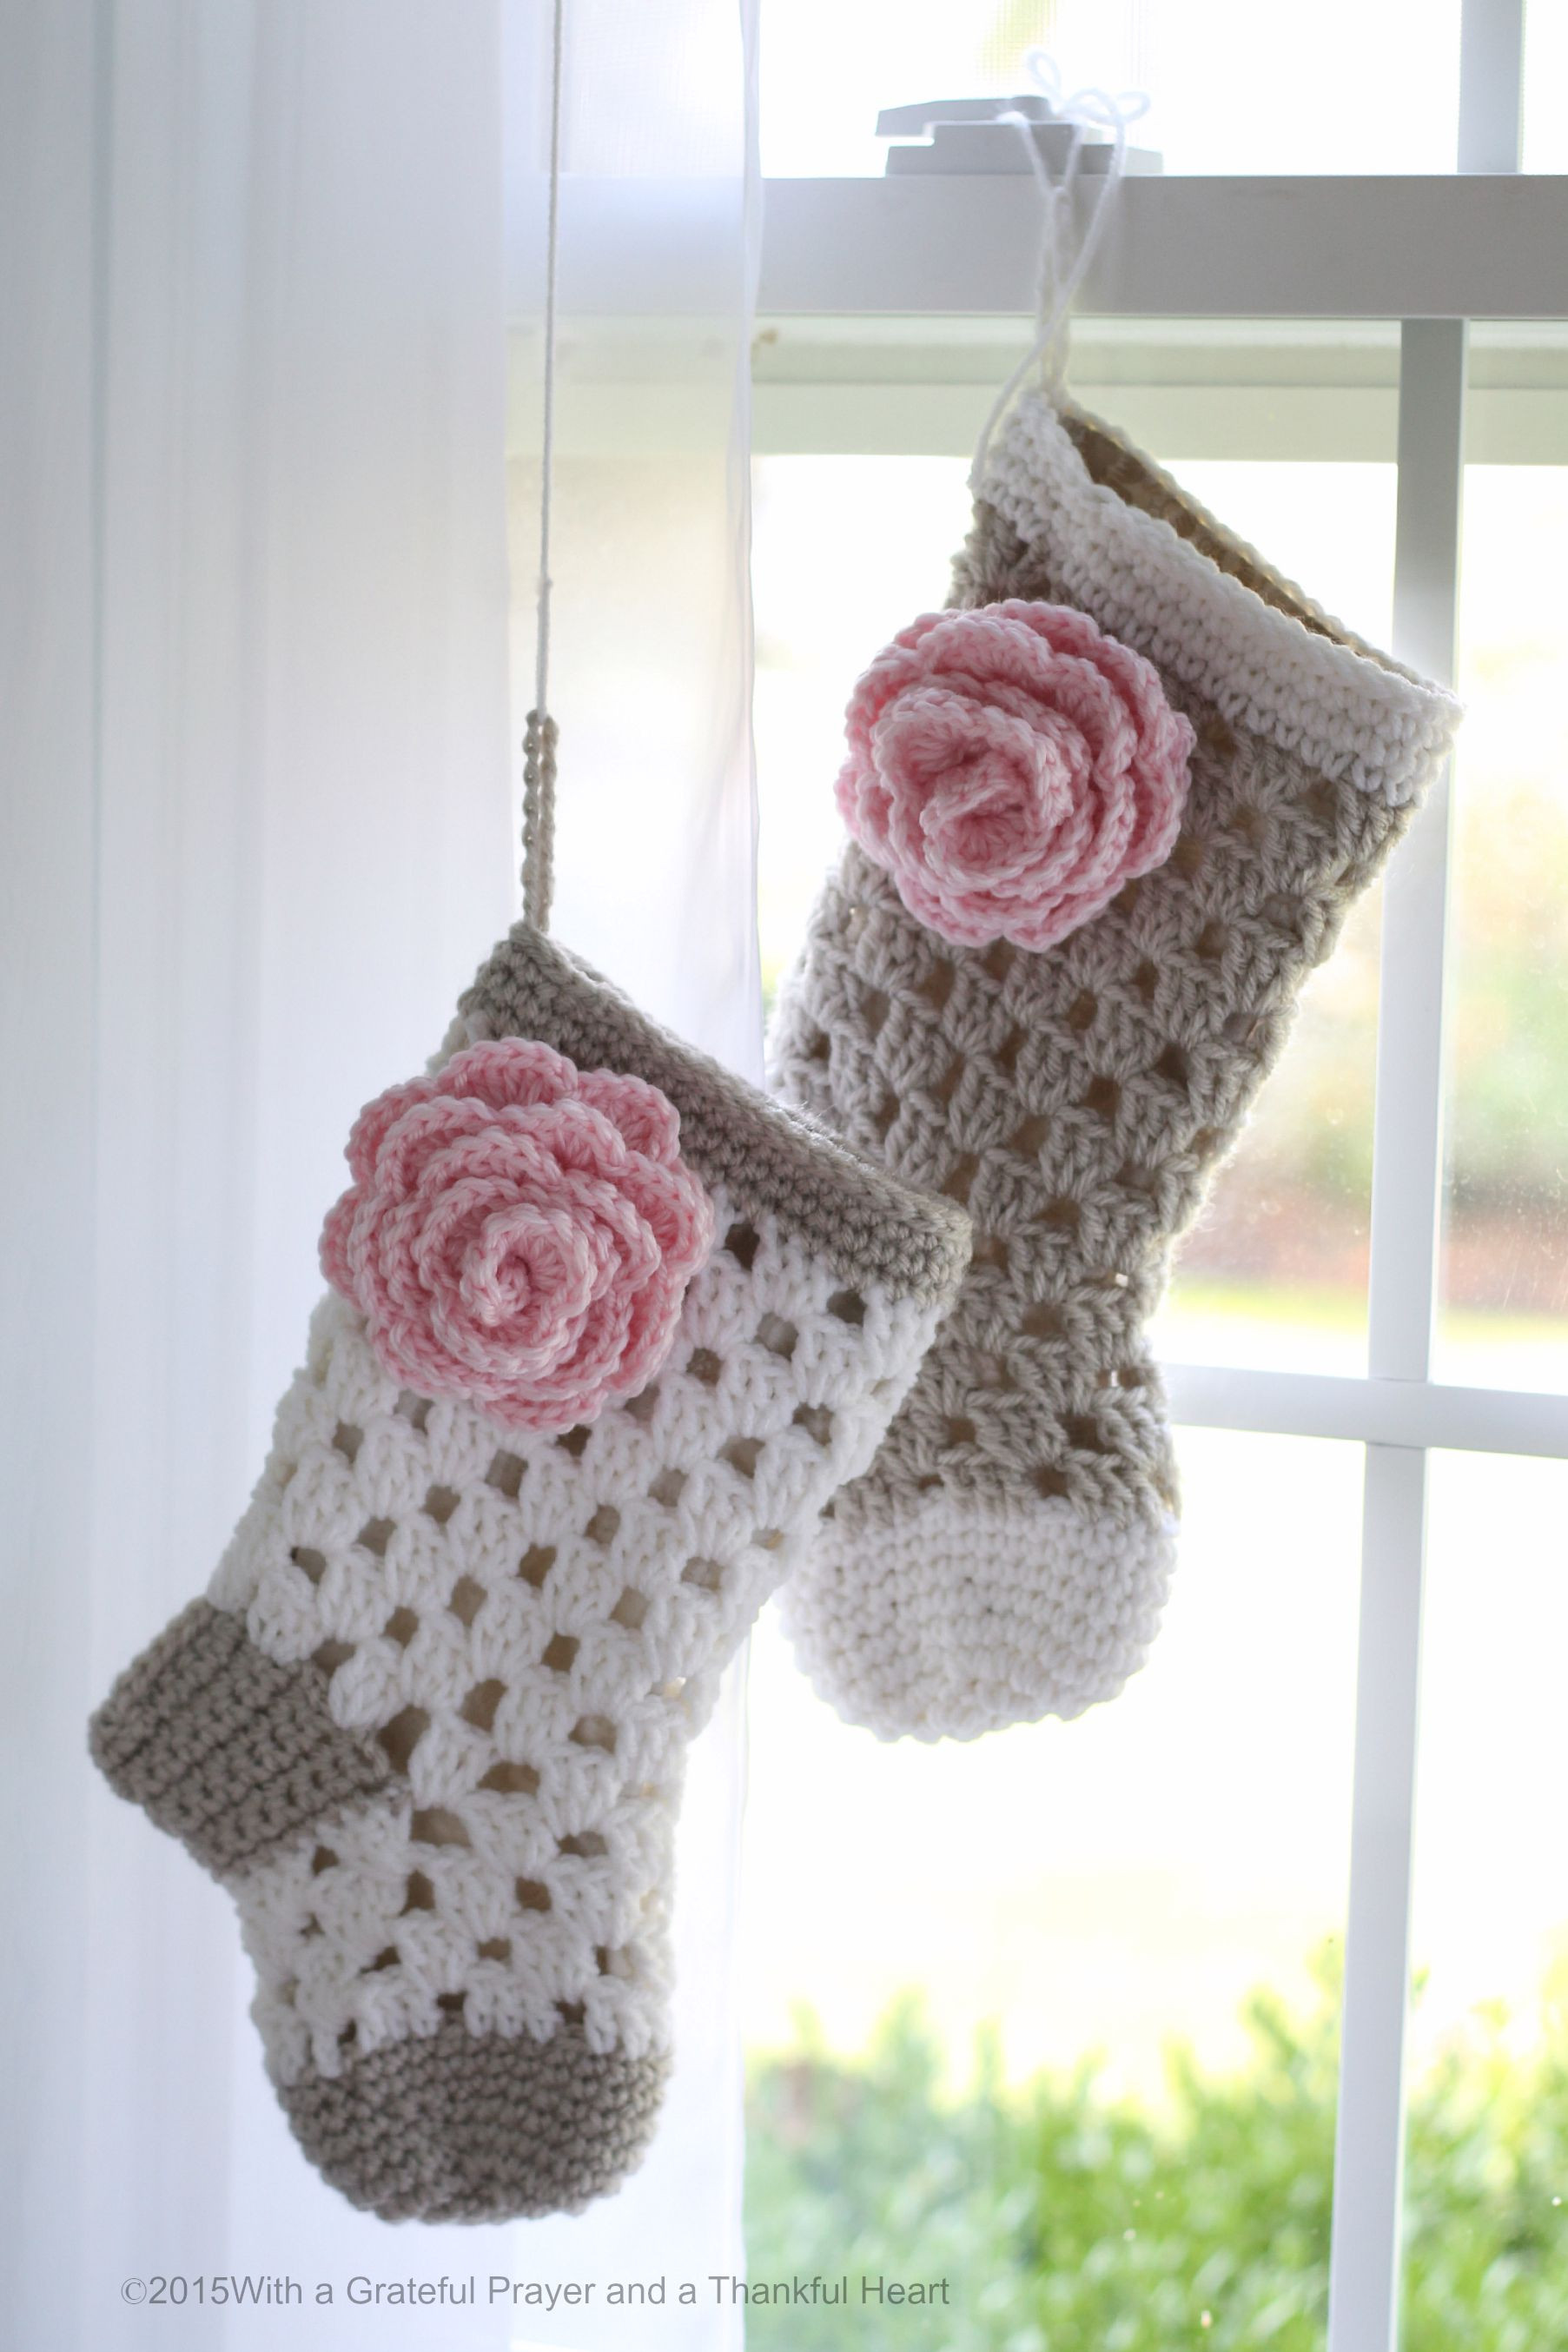 Awesome Lined Crochet Stocking for Chloe Grateful Prayer Free Christmas Stocking Pattern Of New 50 Images Free Christmas Stocking Pattern